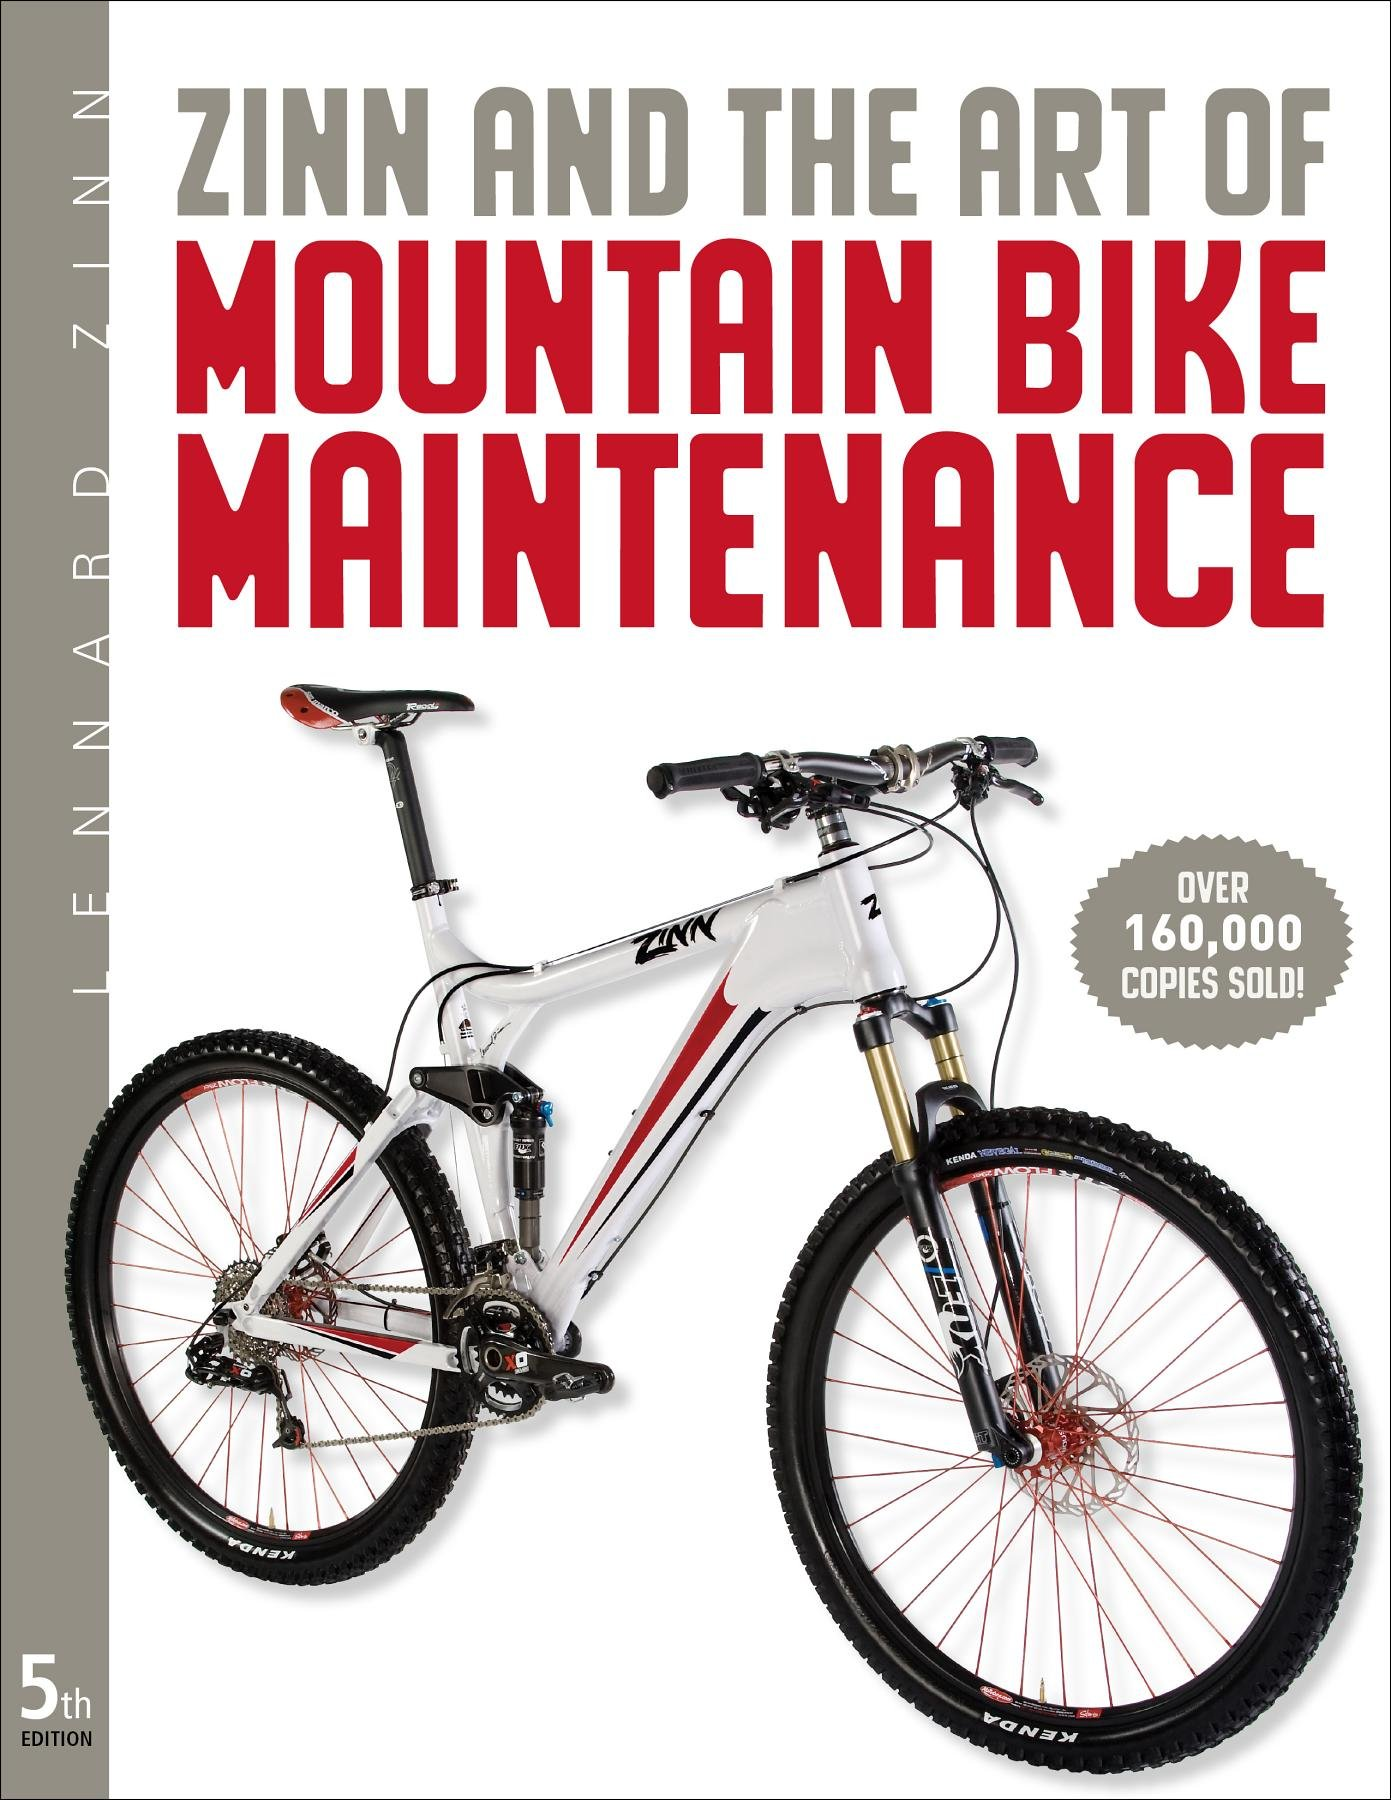 zinn the art of mountain bike maintenance lennard zinn todd rh amazon com mountain bike repair manual free download mountain bicycle repair manual